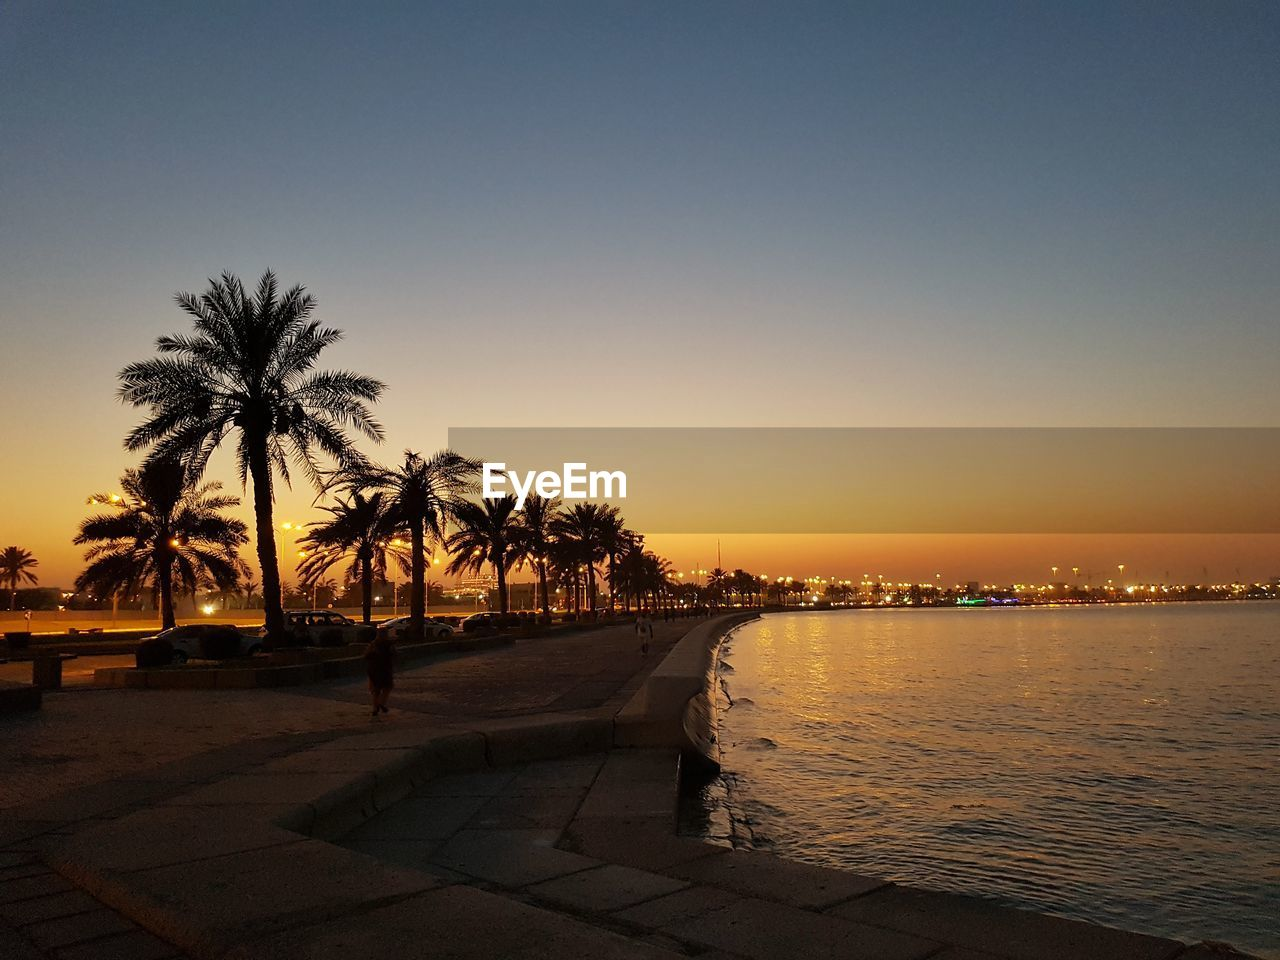 sky, palm tree, tropical climate, sunset, tree, water, nature, clear sky, plant, sea, architecture, beauty in nature, beach, copy space, silhouette, no people, scenics - nature, orange color, city, swimming pool, outdoors, coconut palm tree, promenade